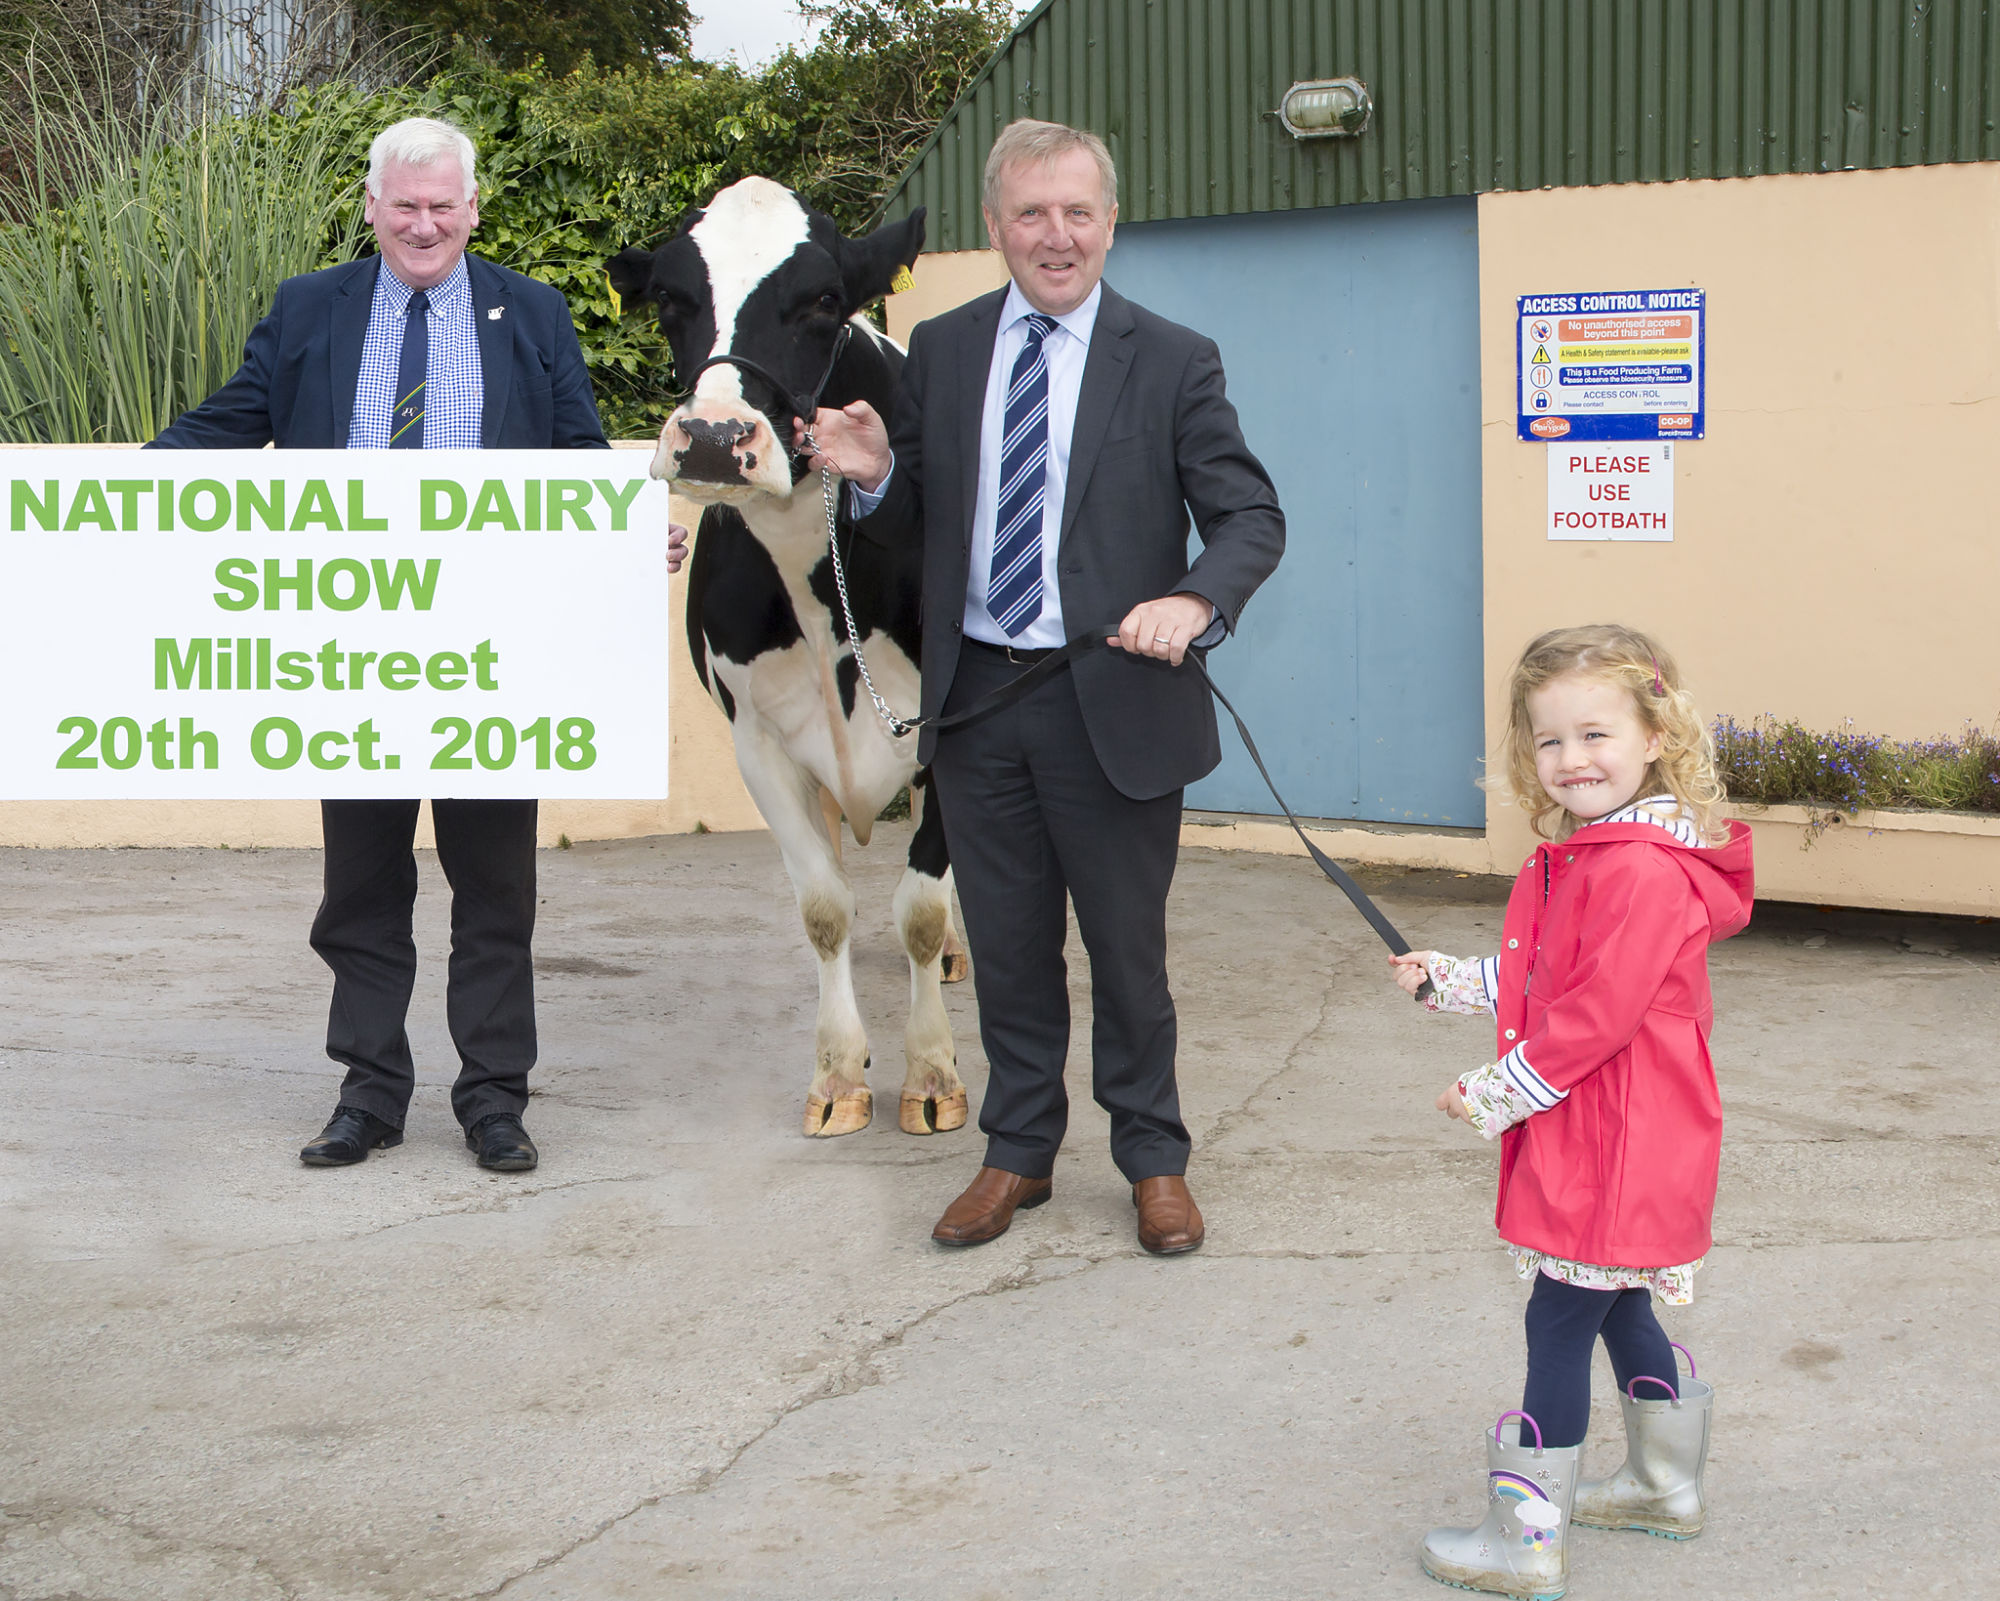 In a hurry to get to the National Dairy Show in Millstreet on Saturday 20th October 2018 is Pippa O'Mahony leading the way for Minister Michael Creed and Show Director John Kirby pictured at the press Launch of the Show